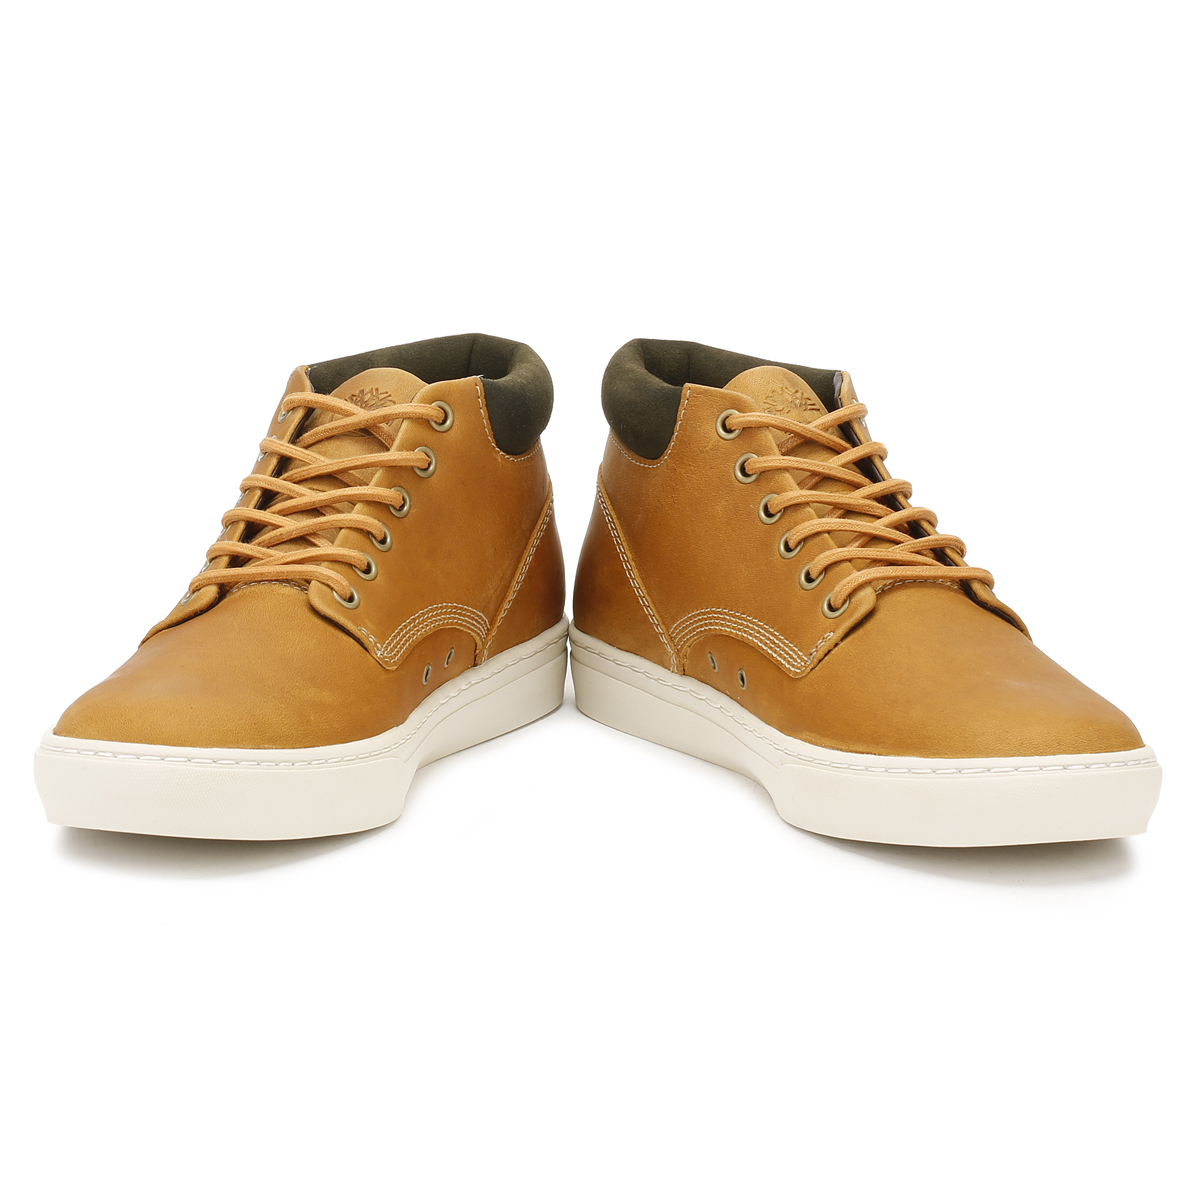 9af5713a Timberland Men Wheat Adventure Cupsole Chukka Boots Leather Ankle Trainer  Shoes